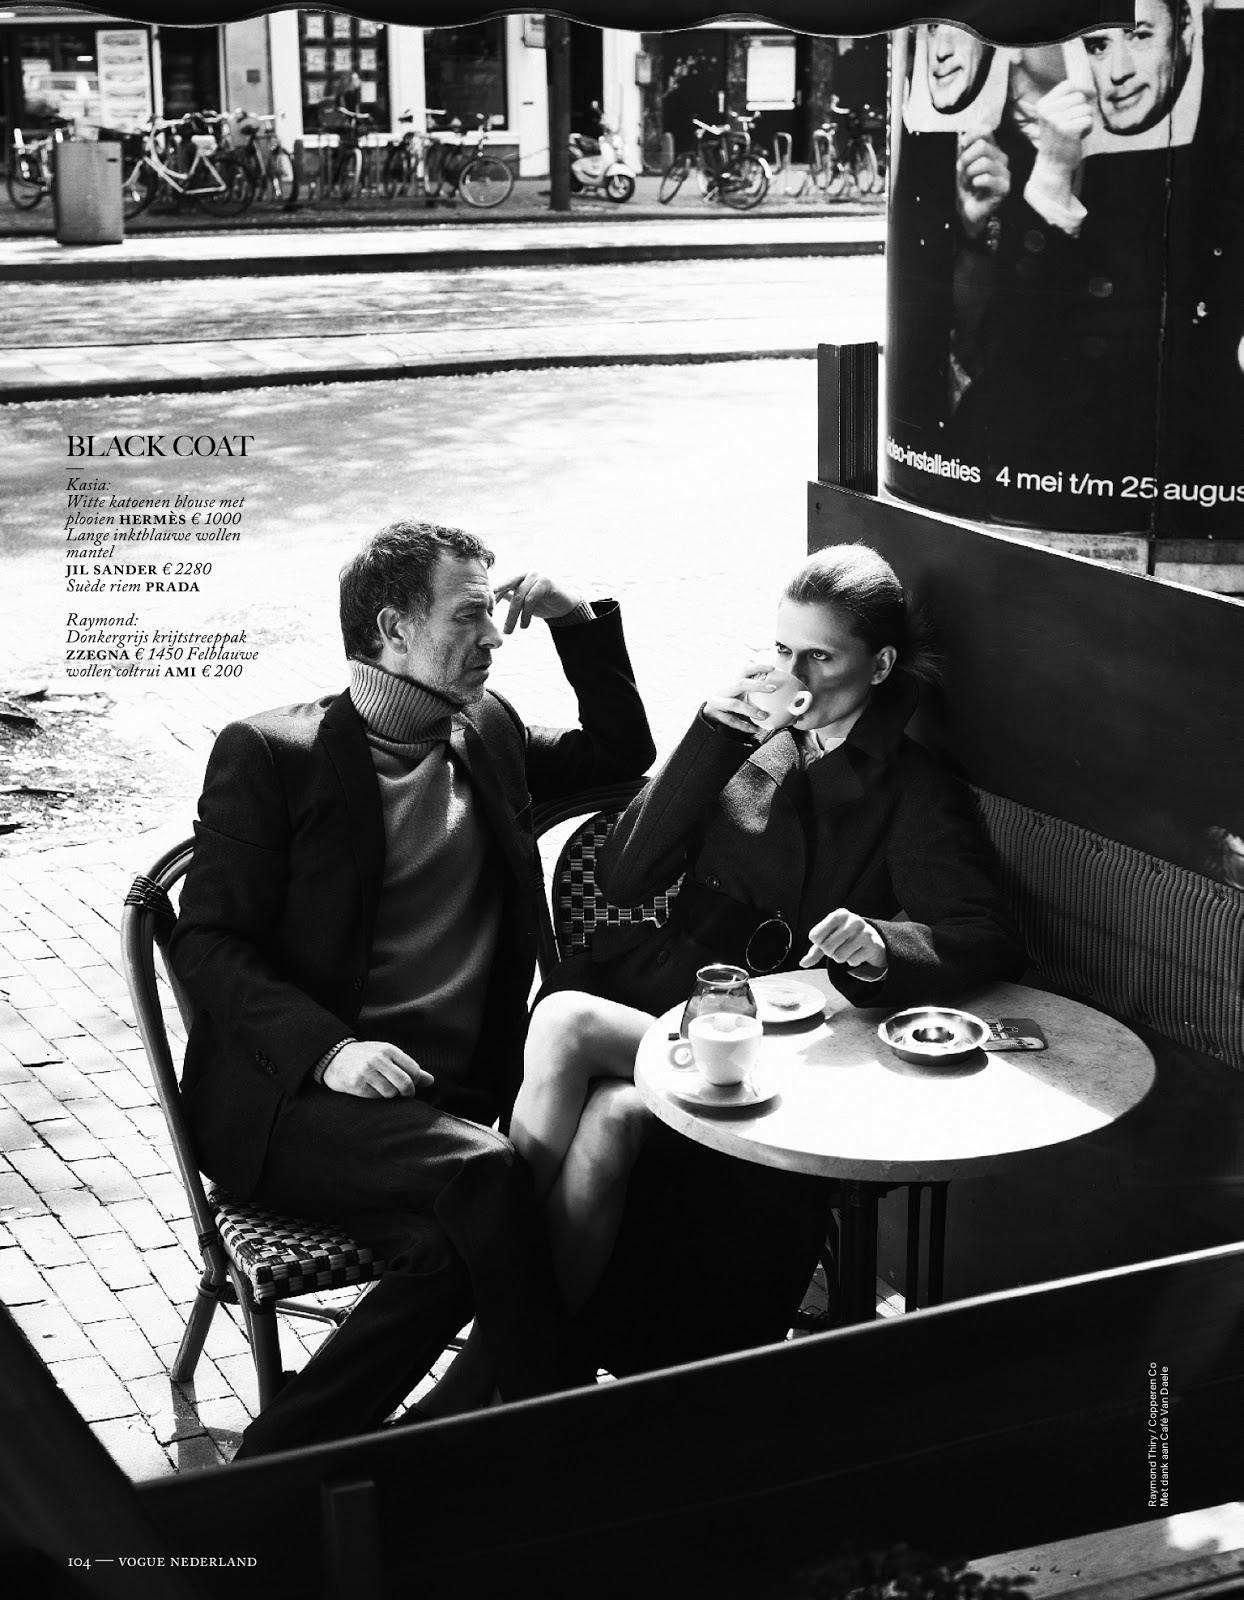 Fashion forward kasia struss by philippe vogelenzang for vogue netherlands august 2013 visual for Adrien harper watches